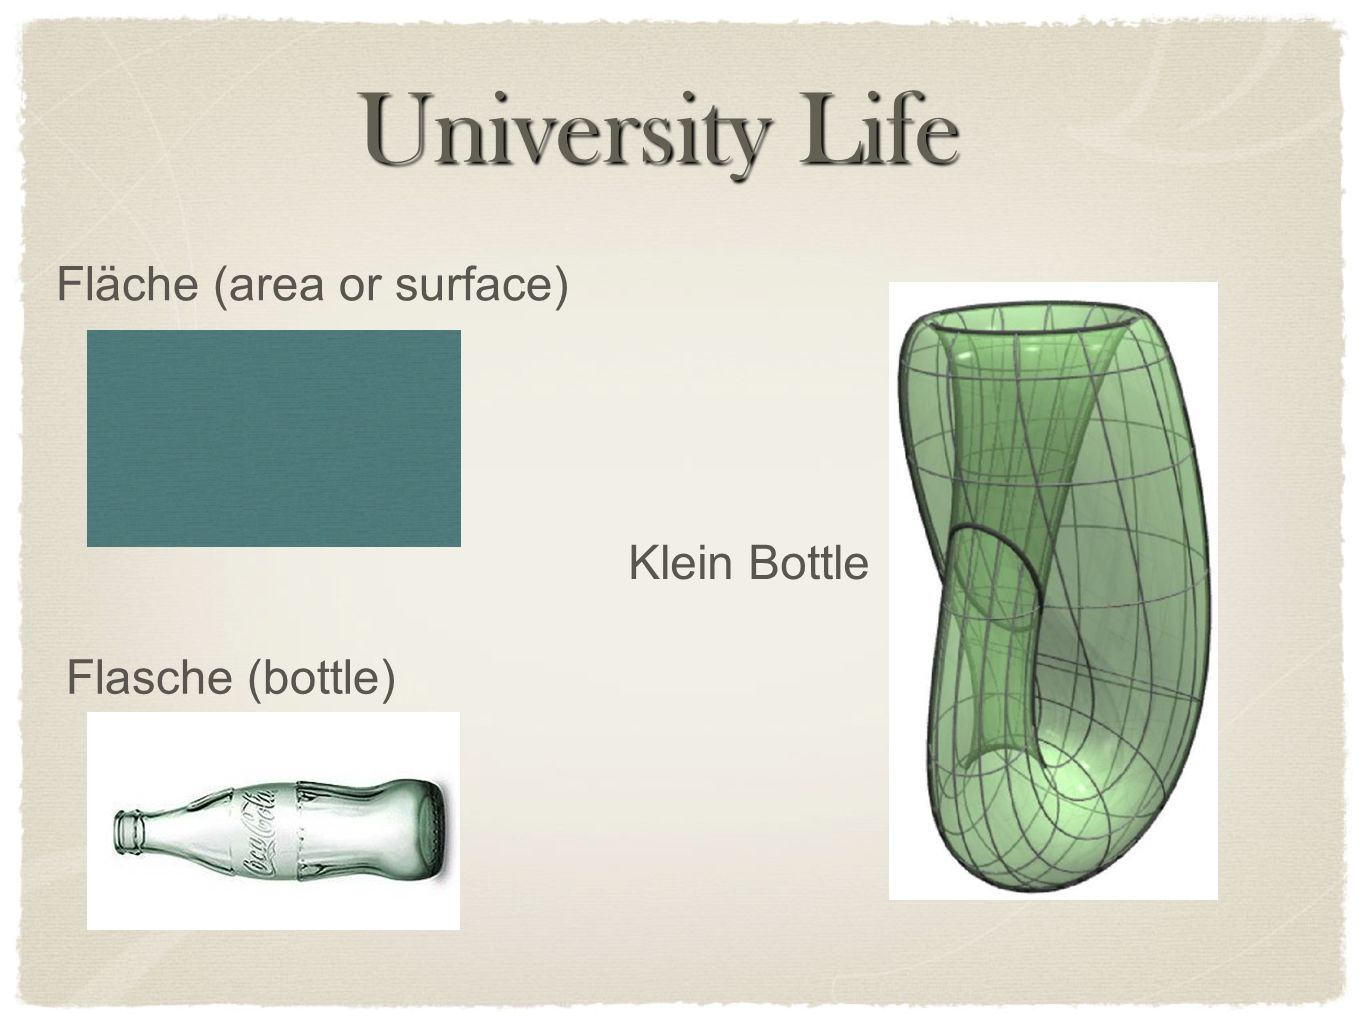 University Life Fläche (area or surface) Klein Bottle Flasche (bottle)